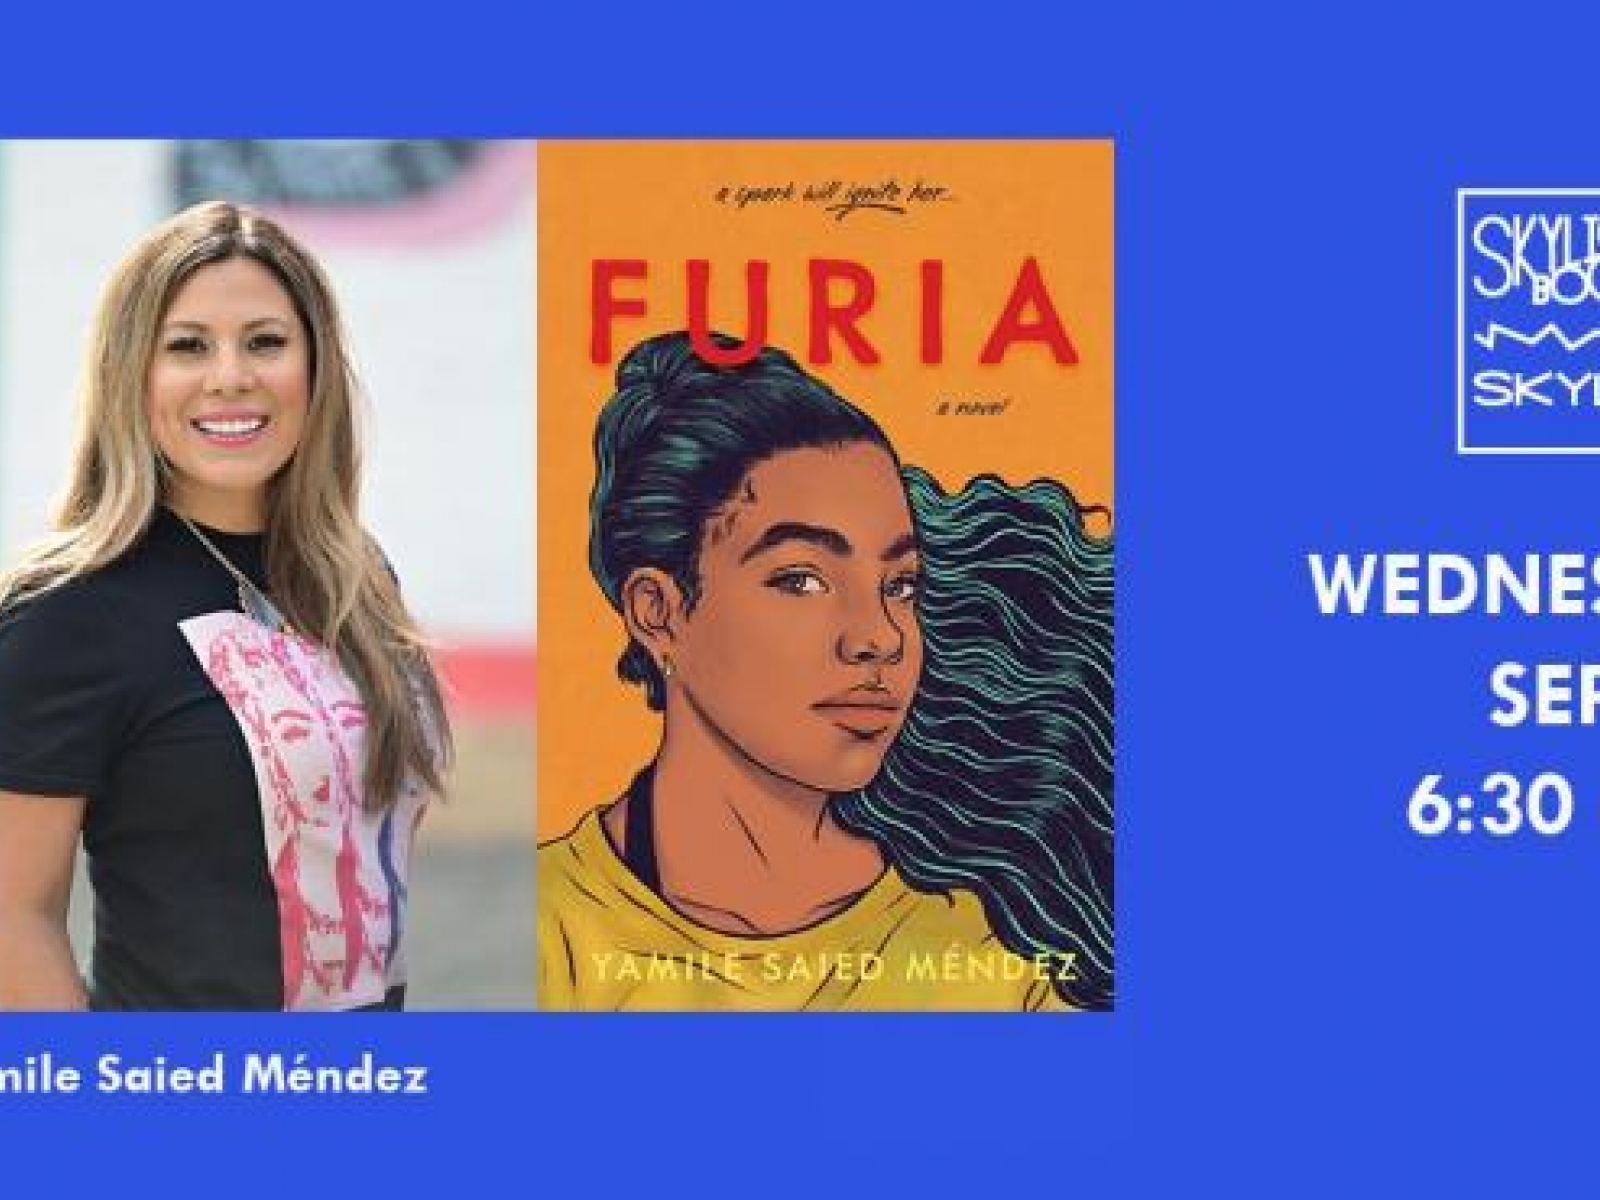 Main image for event titled LIVE ON CROWDCAST: YAMILE SAIED MÉNDEZ READS FROM HER DEBUT YA NOVEL FURIA: by Skylight Books